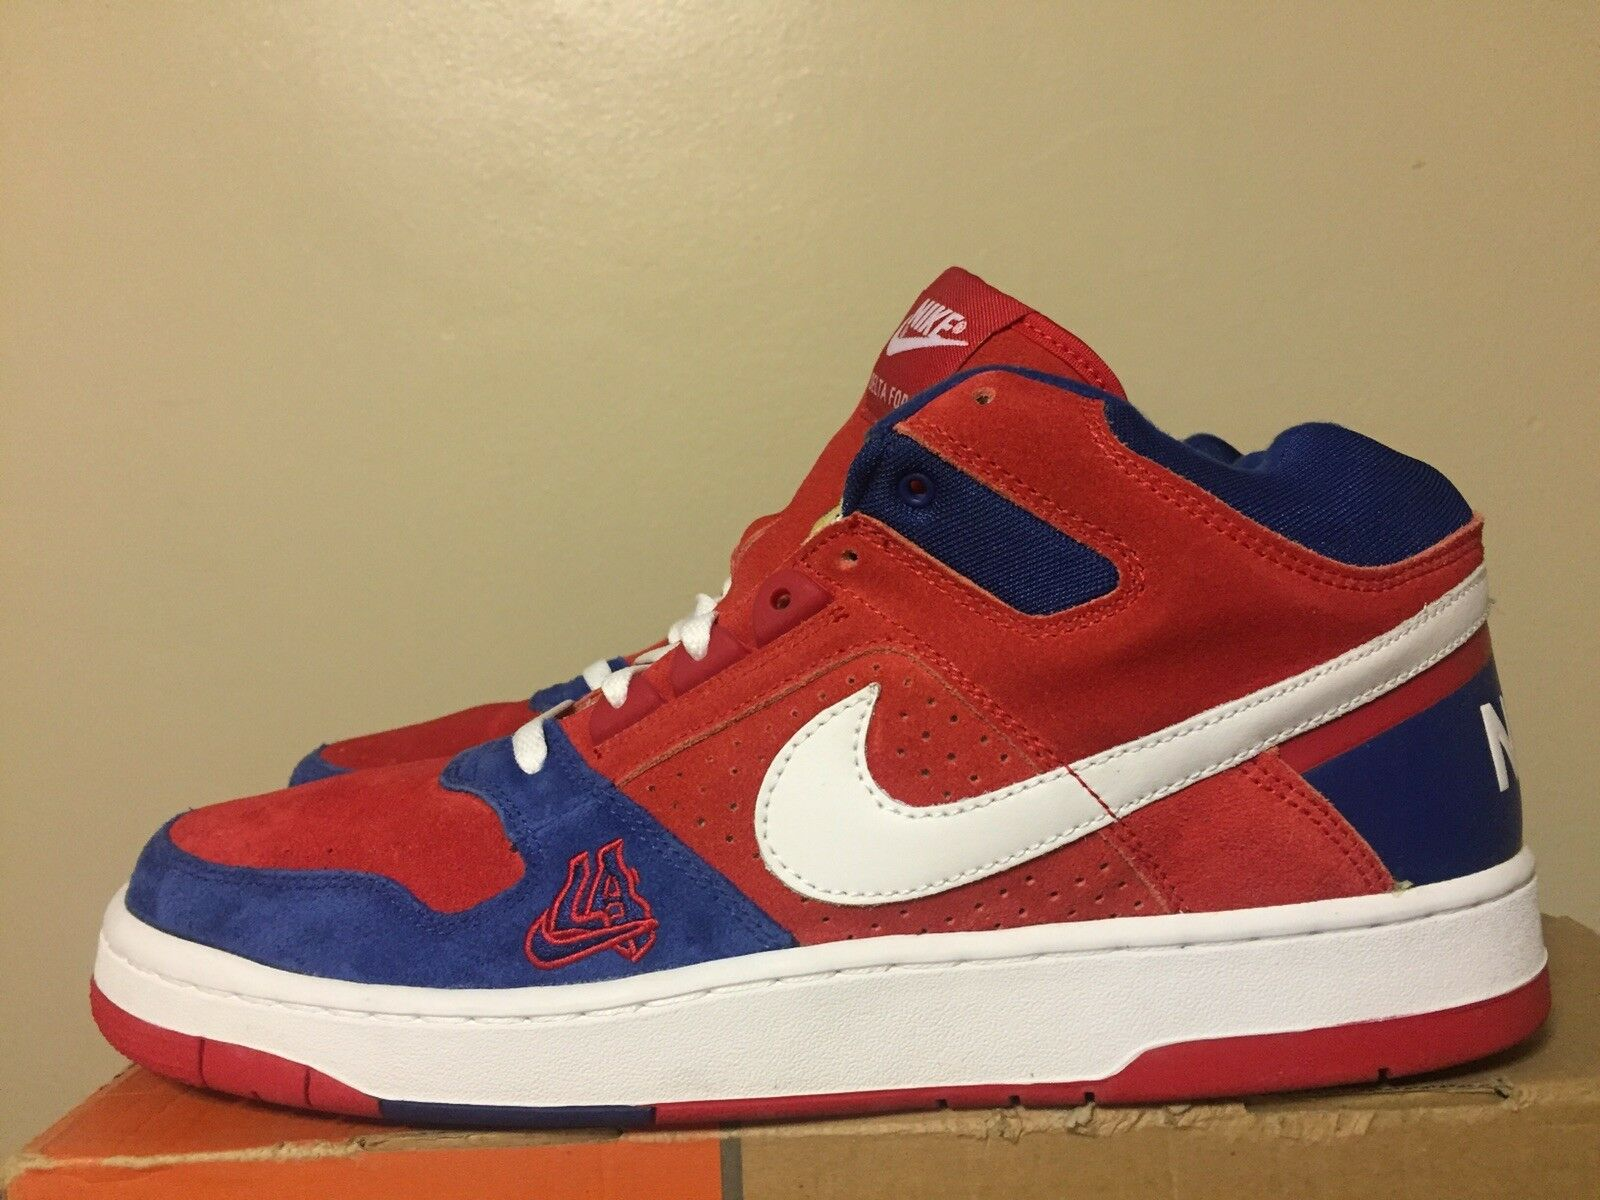 2003 Nike Air DELTA FORCE 3 4 1 LA CLIPPERS ED. RED WHITE blueE 309041-611 SZ.13